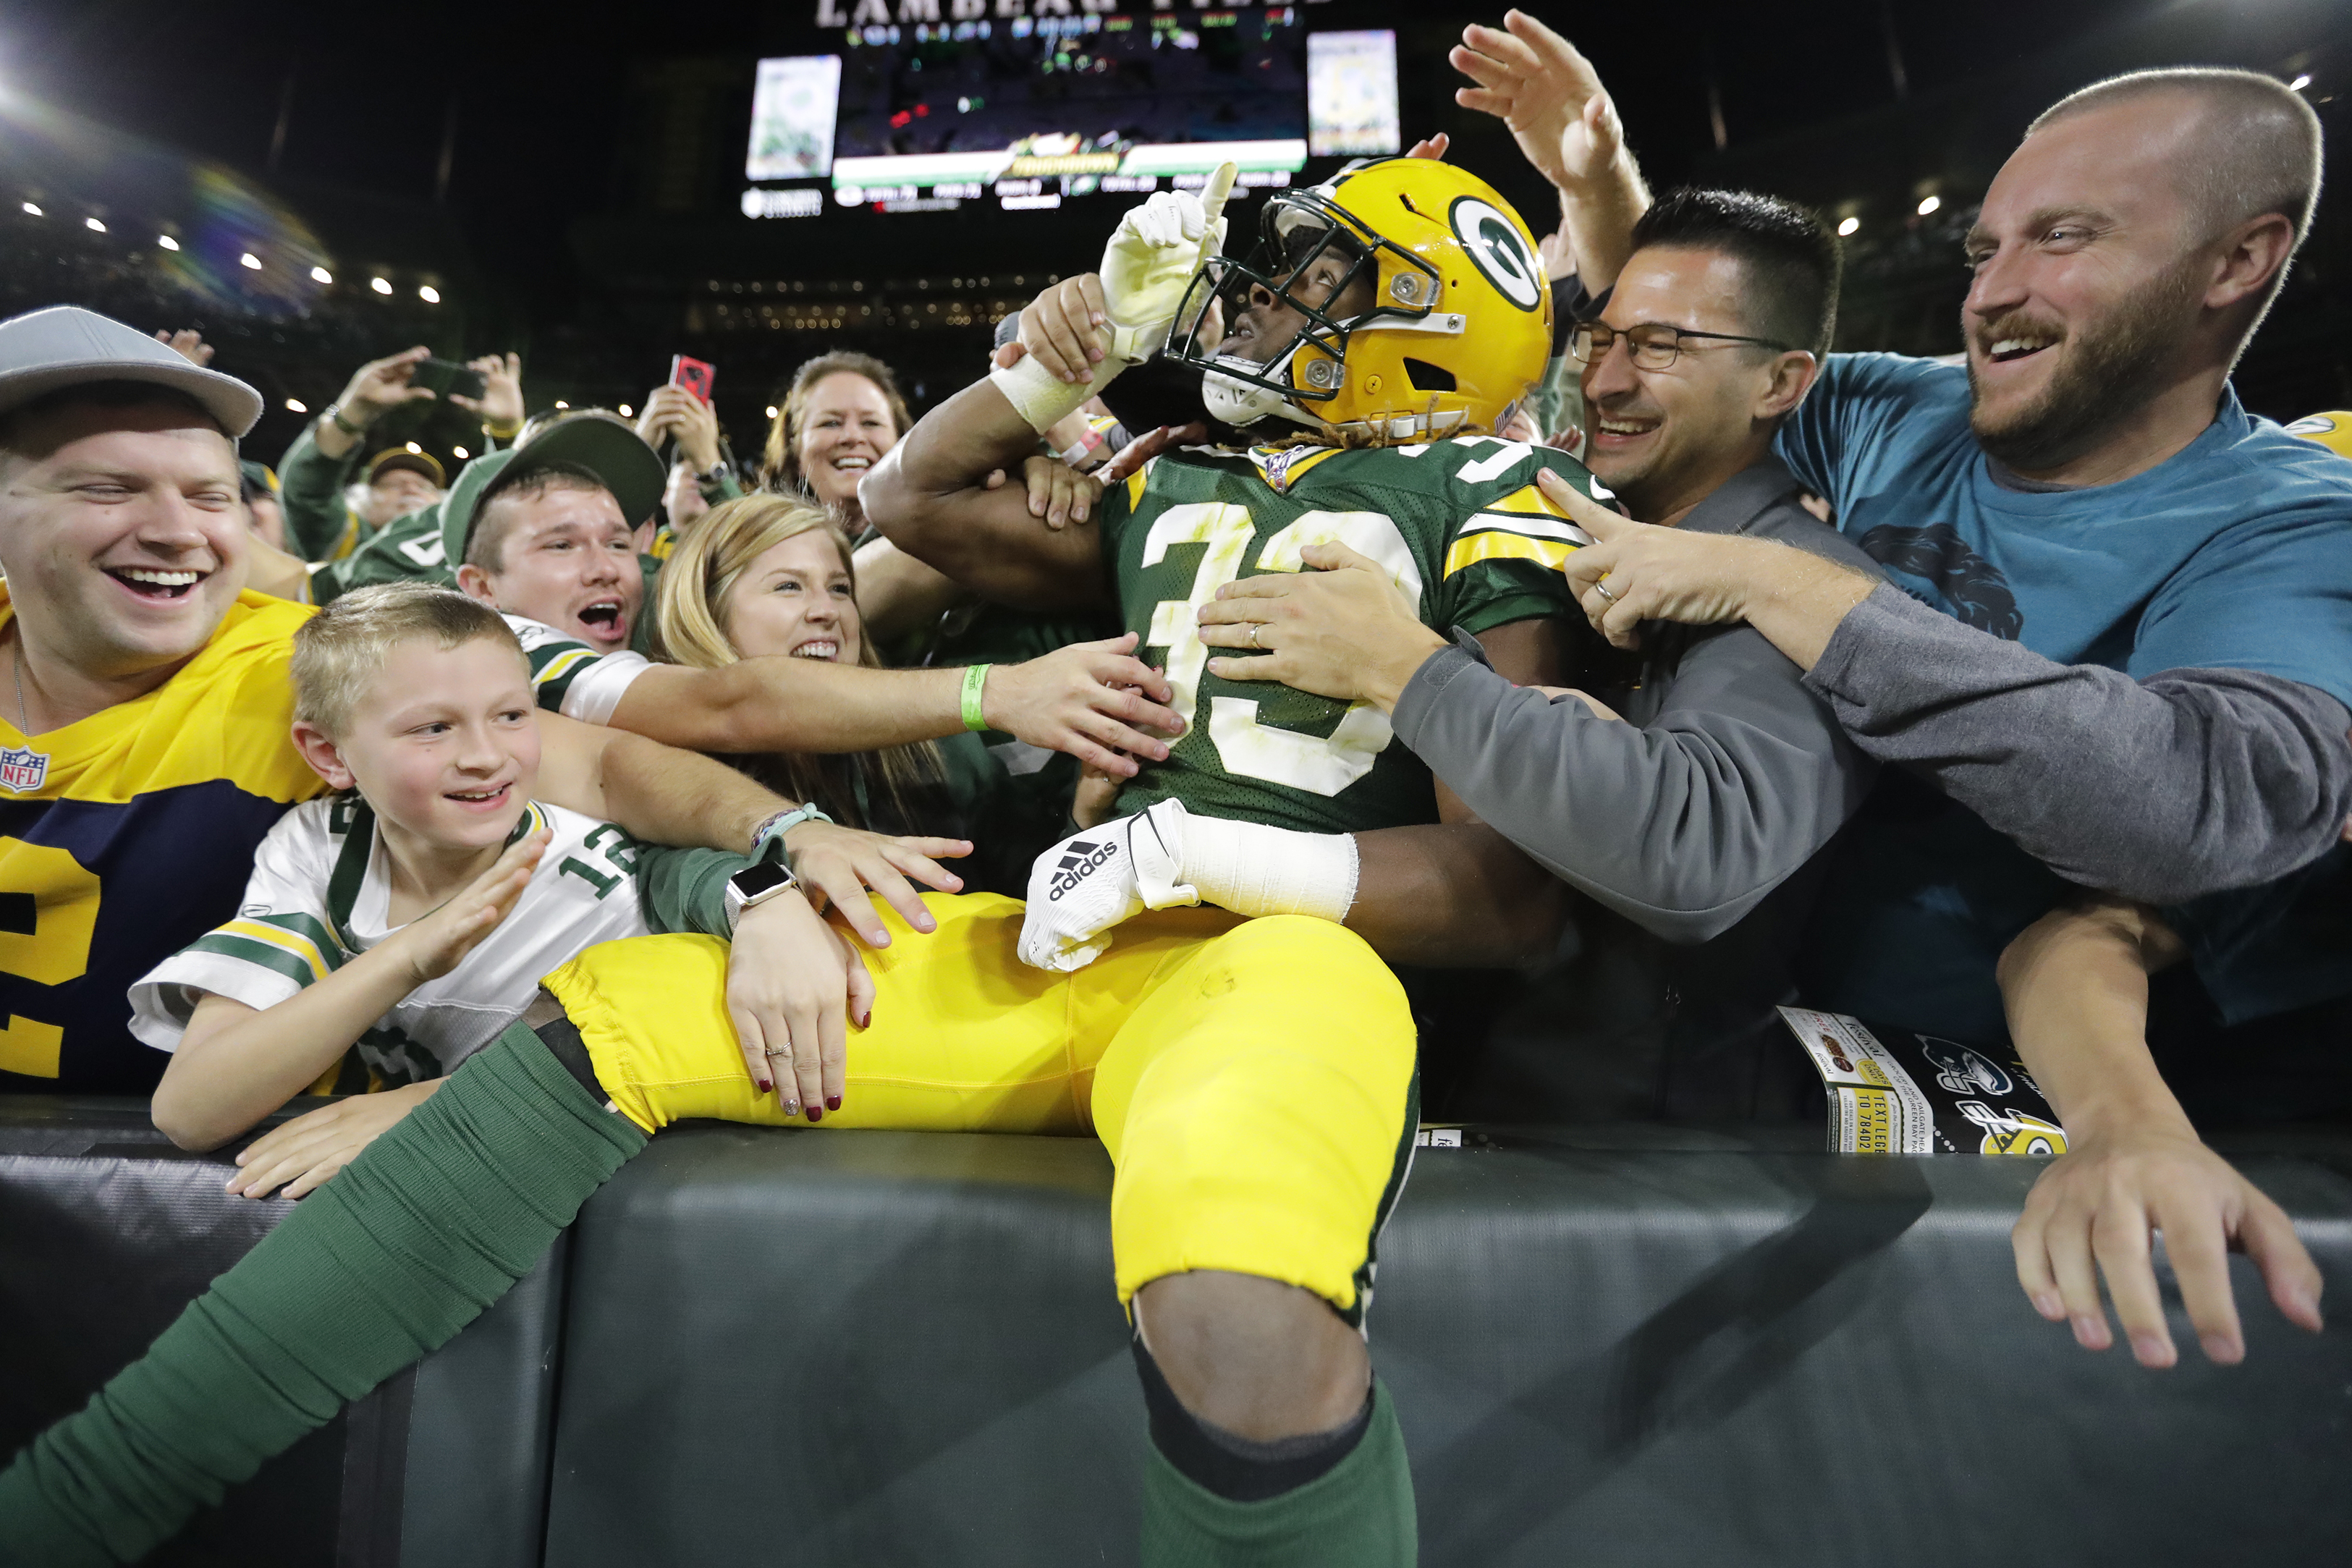 Sept 26, 2019; Green Bay, WI, USA; Green Bay Packers running back Aaron Jones (33) points to the sky as he celebrates scoring a touchdown with fans against Philadelphia Eagles during the first quarter at Lambeau Field. Mandatory Credit: Dan Powers/USA TODAY NETWORK-Wisconsin via USA Today Sports